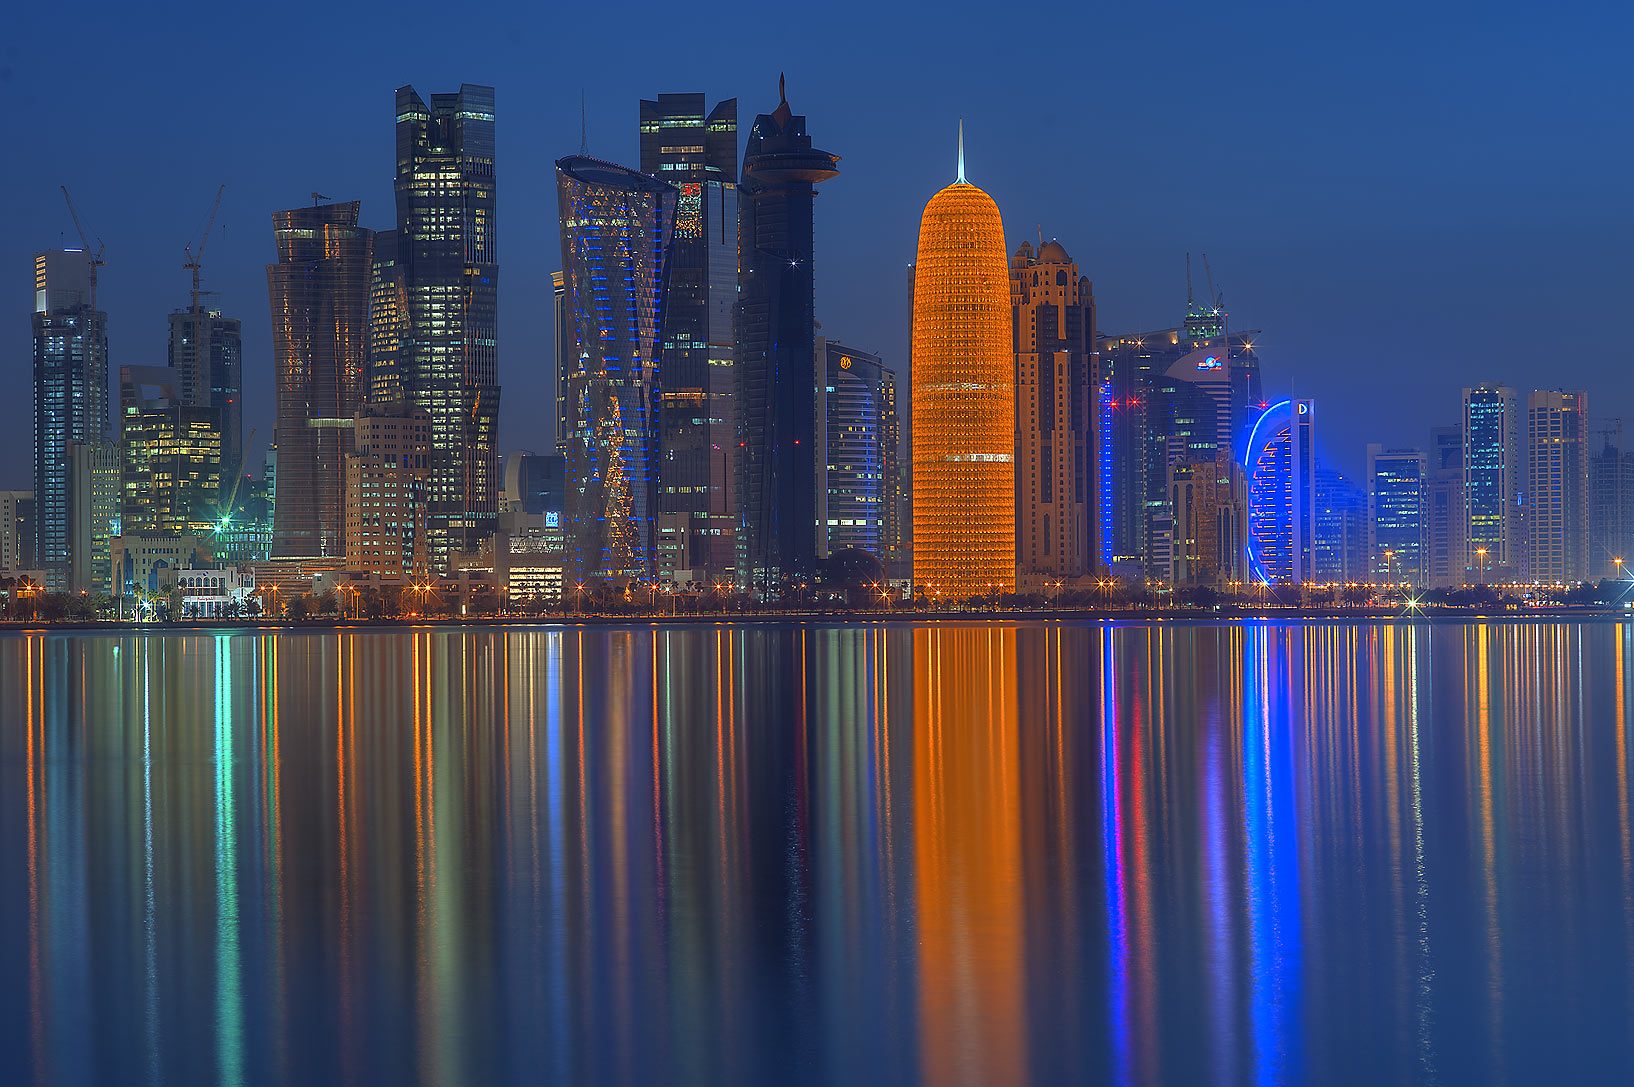 Reflection of towers of West Bay from Corniche promenade. Doha, Qatar